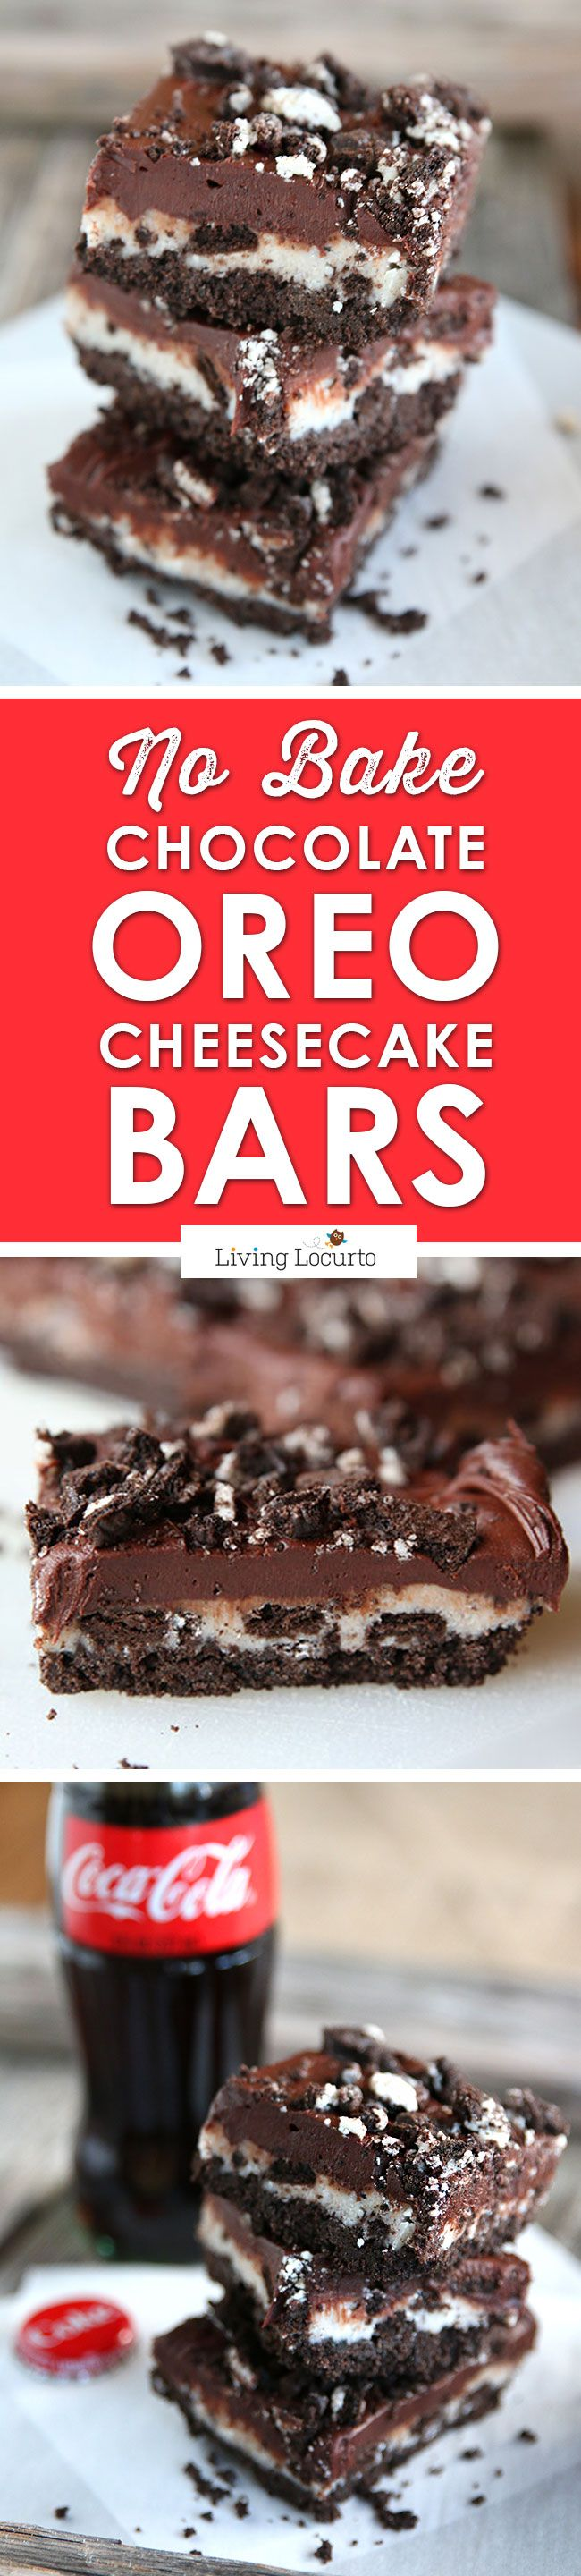 A chocolate lovers dream! This No Bake Chocolate OREO Cheesecake Bars recipe is an irresistible, melt-in-your mouth chocolate dessert recipe! Creamy chocolate, crunchy @oreo cookies and cheescake - just chill and eat!! LivingLocurto.com Great served with a cold @cocacola for a football watching party, birthday or when you need a fast chocolate fix. #homebowlherocontest #homebowlhero #iworkwithcoke ad